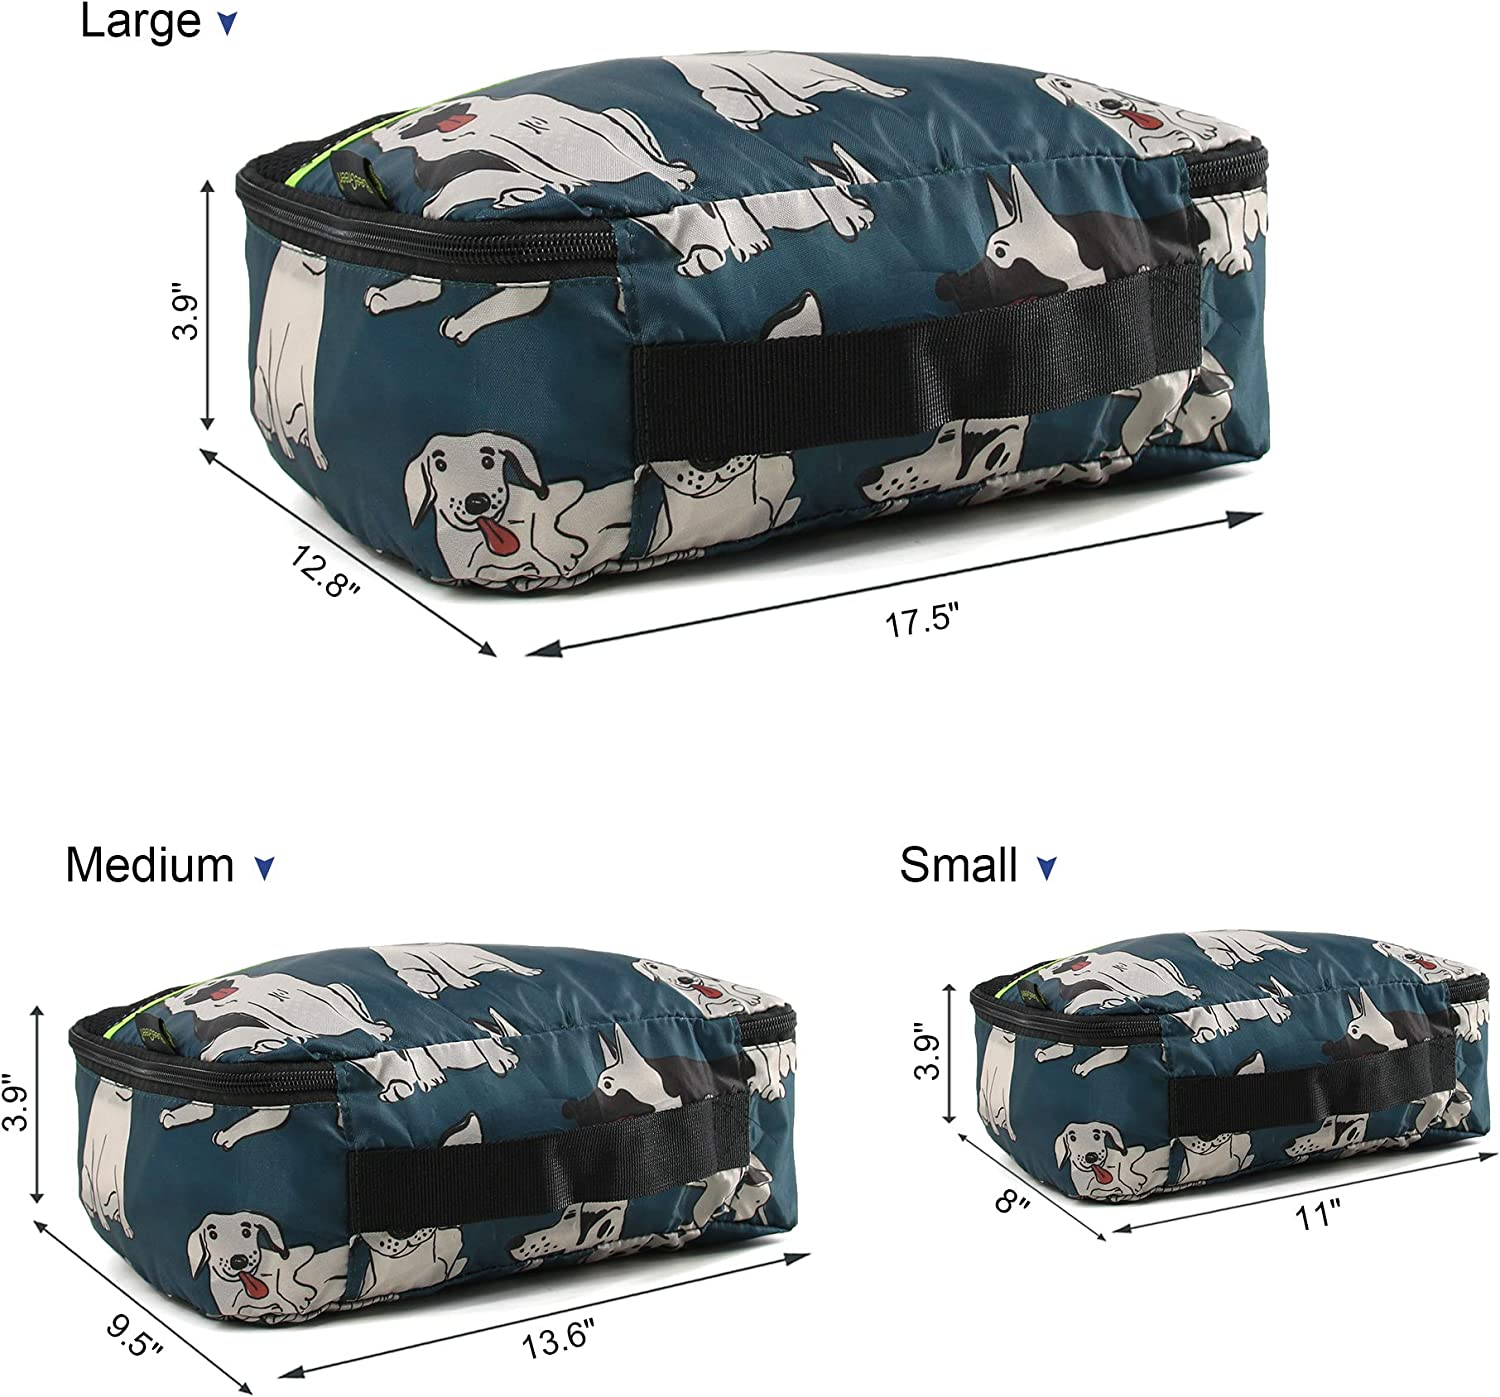 4 Packing Cubes Luggage Bags Organizer Durable Travel Accessories Machine Washable Compression Luggage Packing Bags for Trip Storage Cute Cats Designs